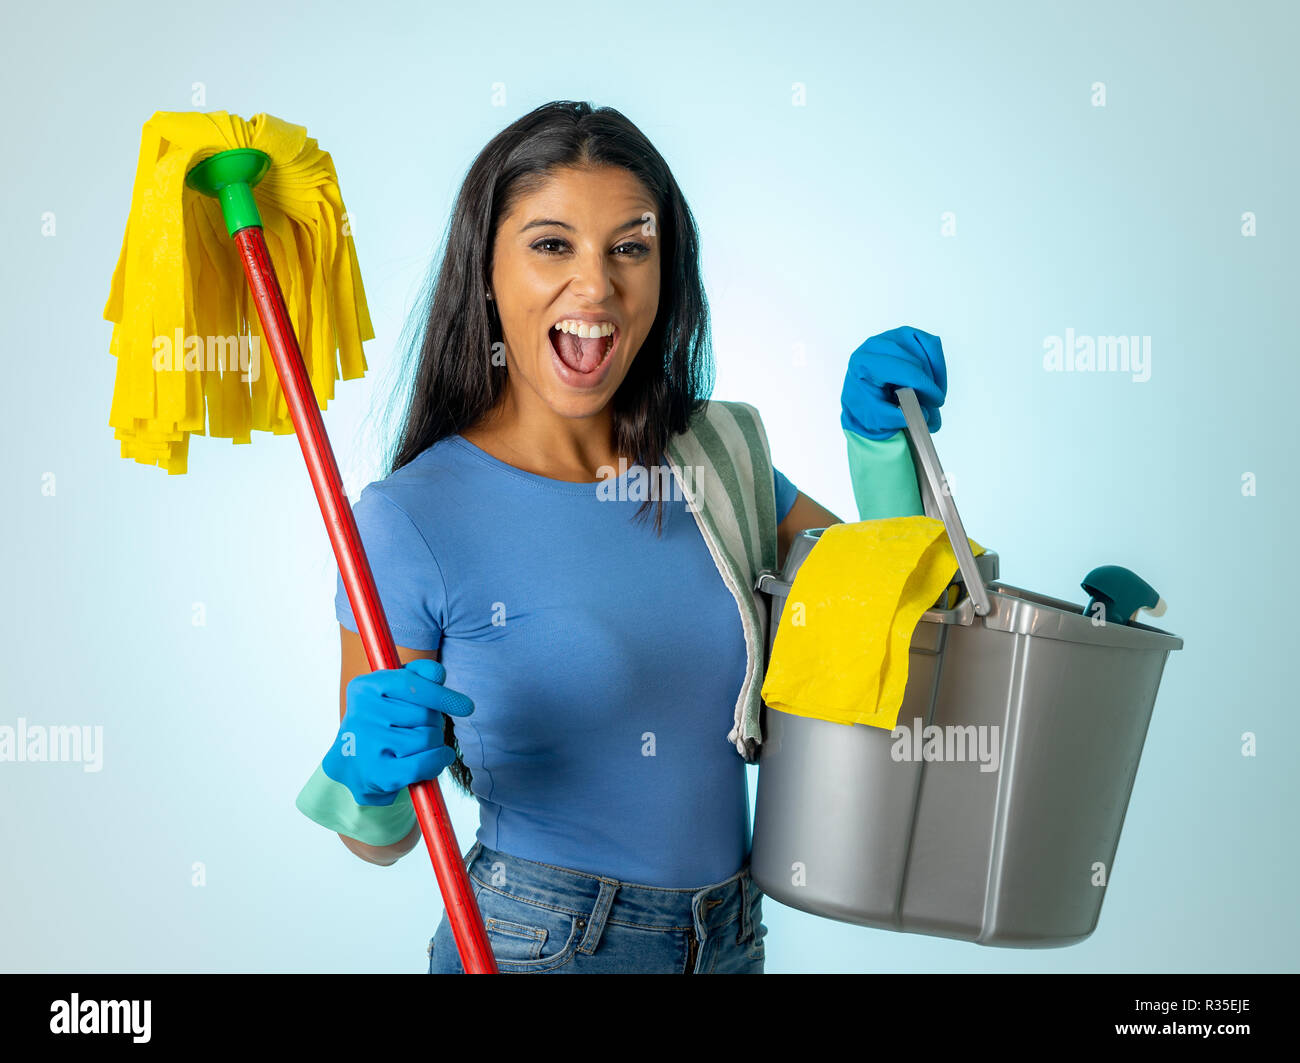 Beautiful happy latin woman holding cleaning equipment in Cleaning service Professional, housemaid and housework isolated on blue background. - Stock Image